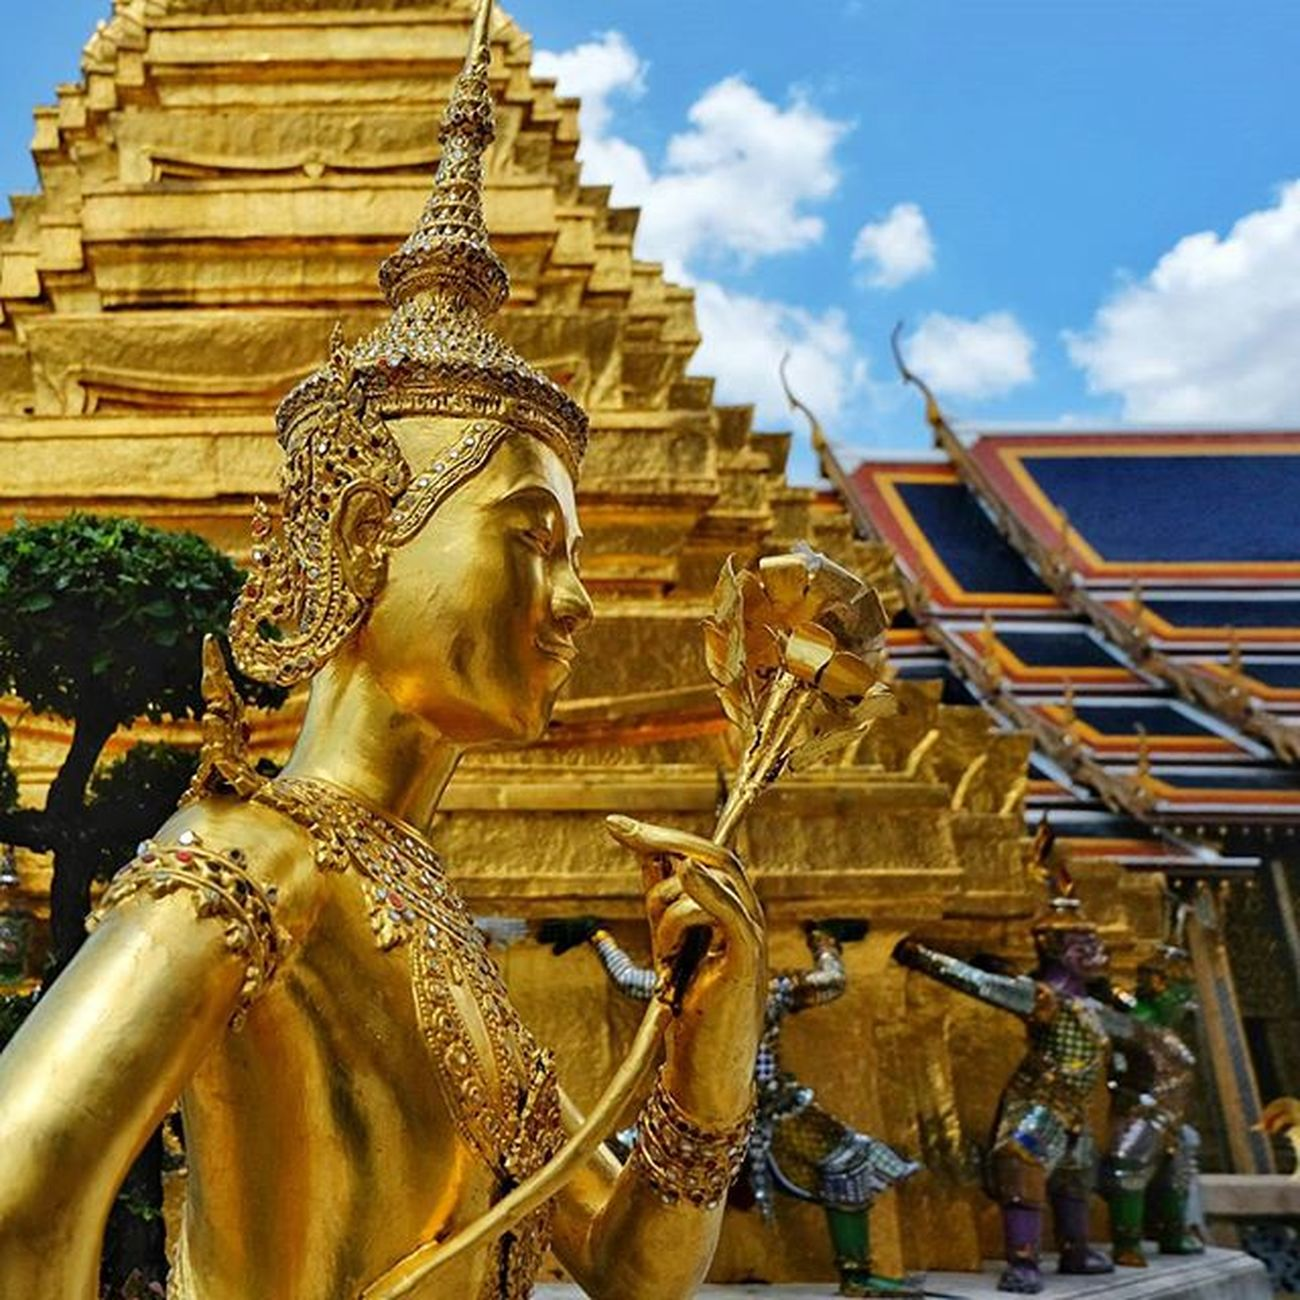 Thai angel . . . Fujixm1 Fujifilm Snapseed Angel Gold Golden Temple Daylight Glitter Shine Landmark Thailand Bangkok Bkkstuff Ig_bangkok Ig_thailandia Igersthailand Igersworldwide Insta_thailand Travelgram Travelthailand Thailandluxe Thaistagram Thailand_allshots Ig_today instaplace siamthai_ig shotoftheday instaoftheday picofday